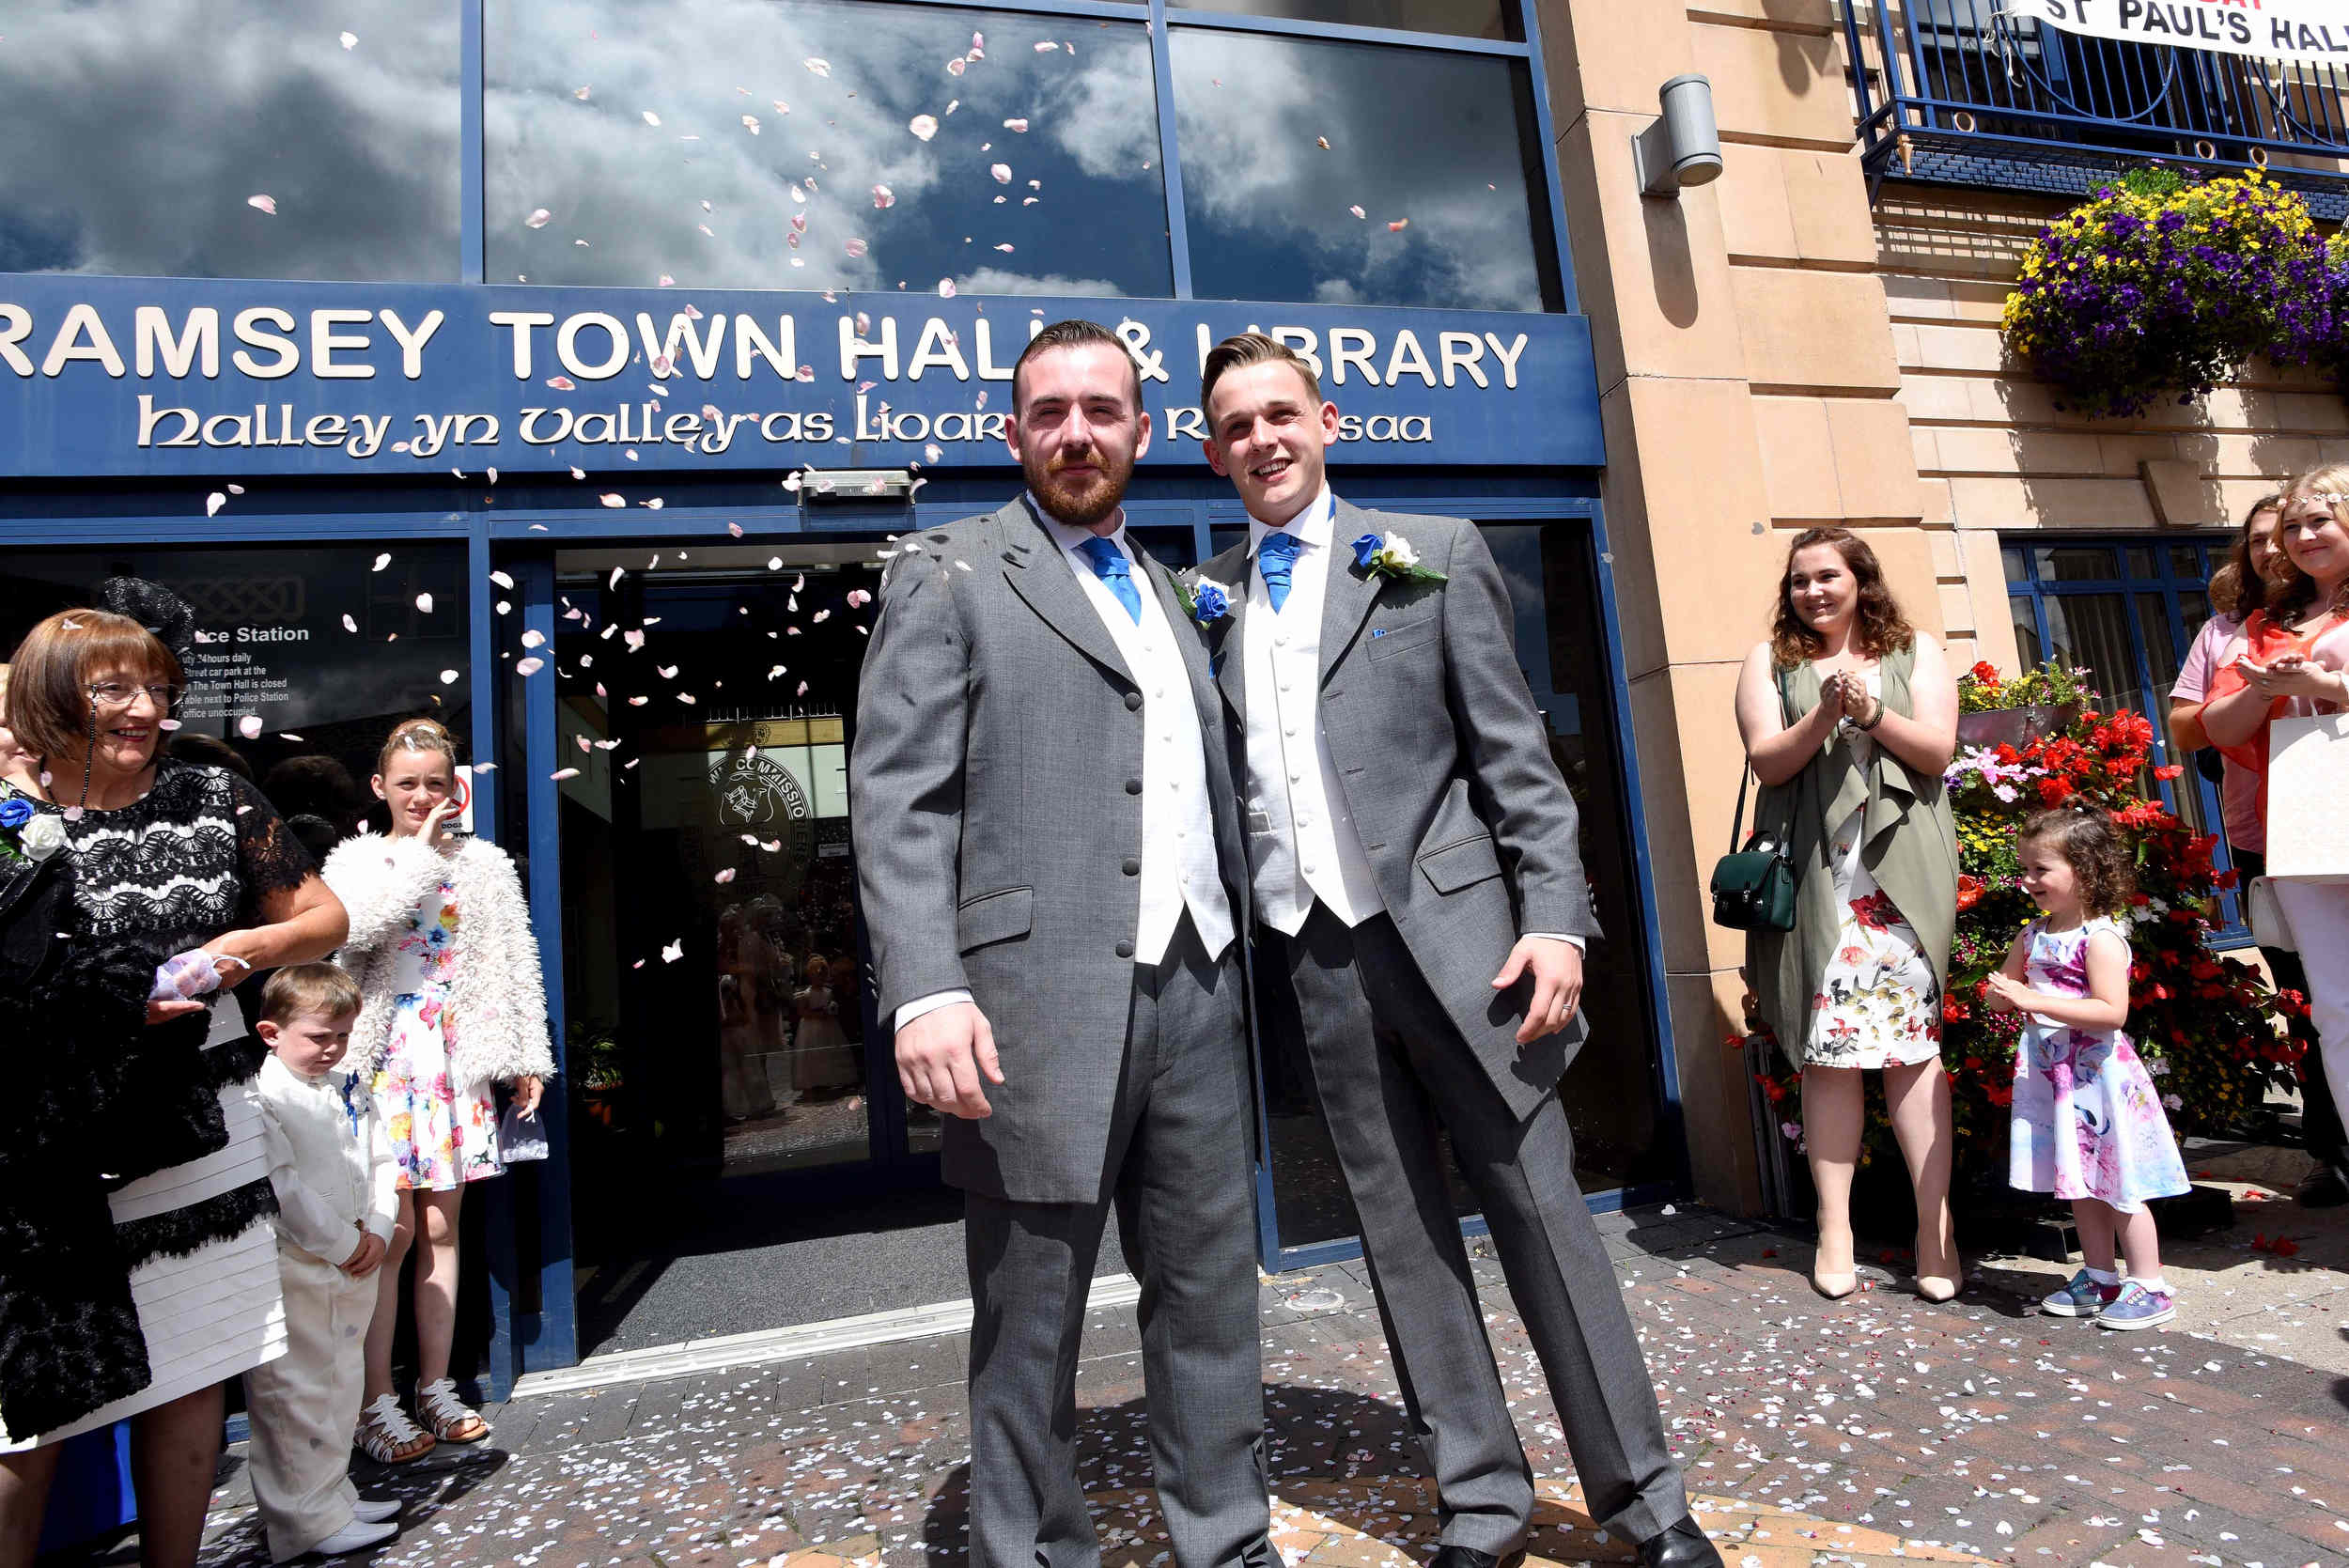 Luke Carine and Zachary Tomlinson are married at Ramsey Town Hall in the Isle of Man's first same-sex marriage ceremony on Saturday, July 30 2016